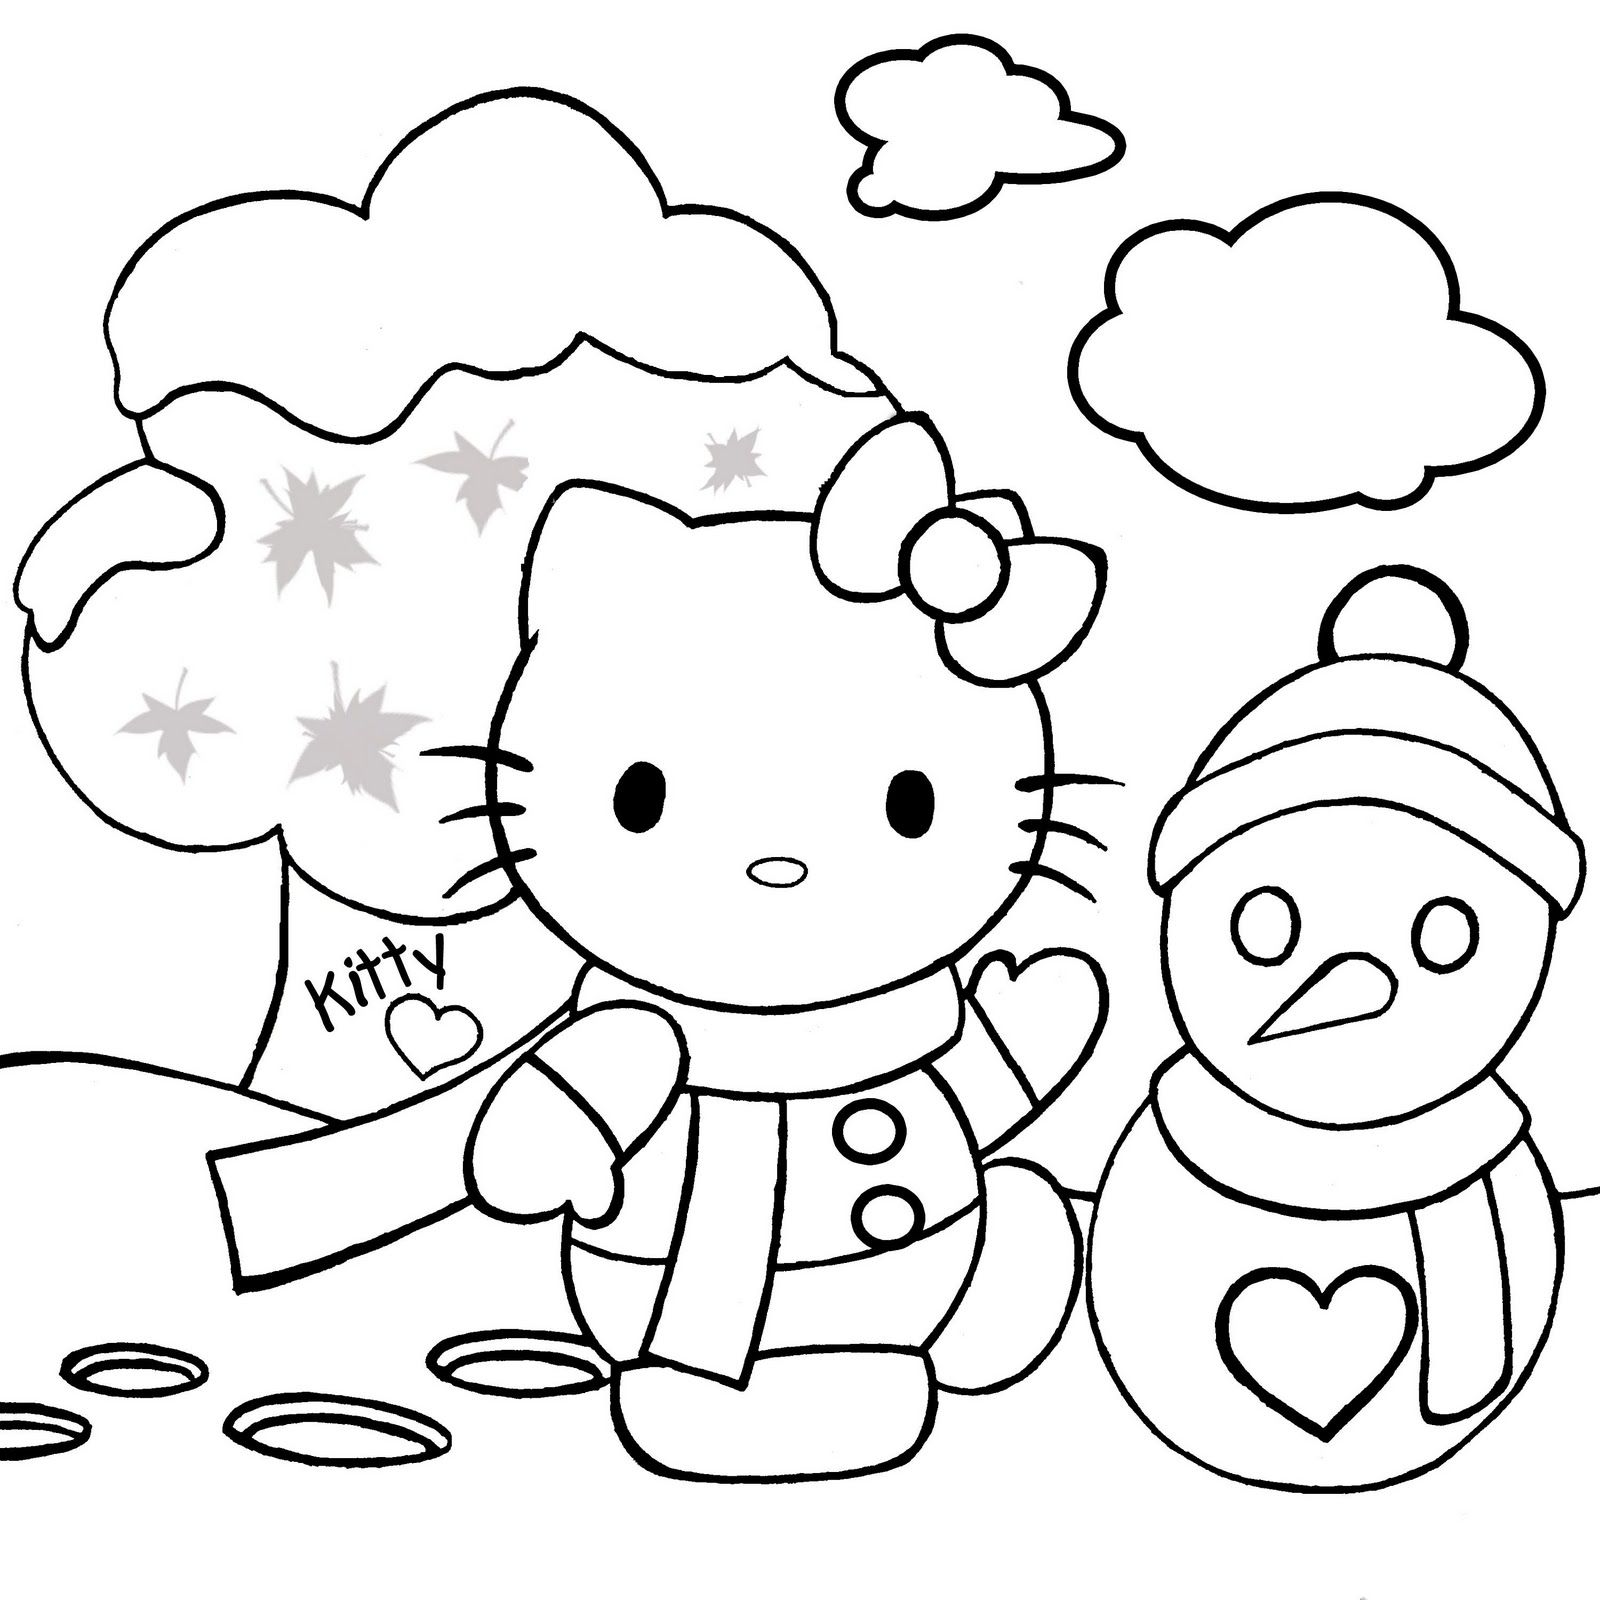 print out merry christmas hello kitty coloring pages printable coloring pages for kids